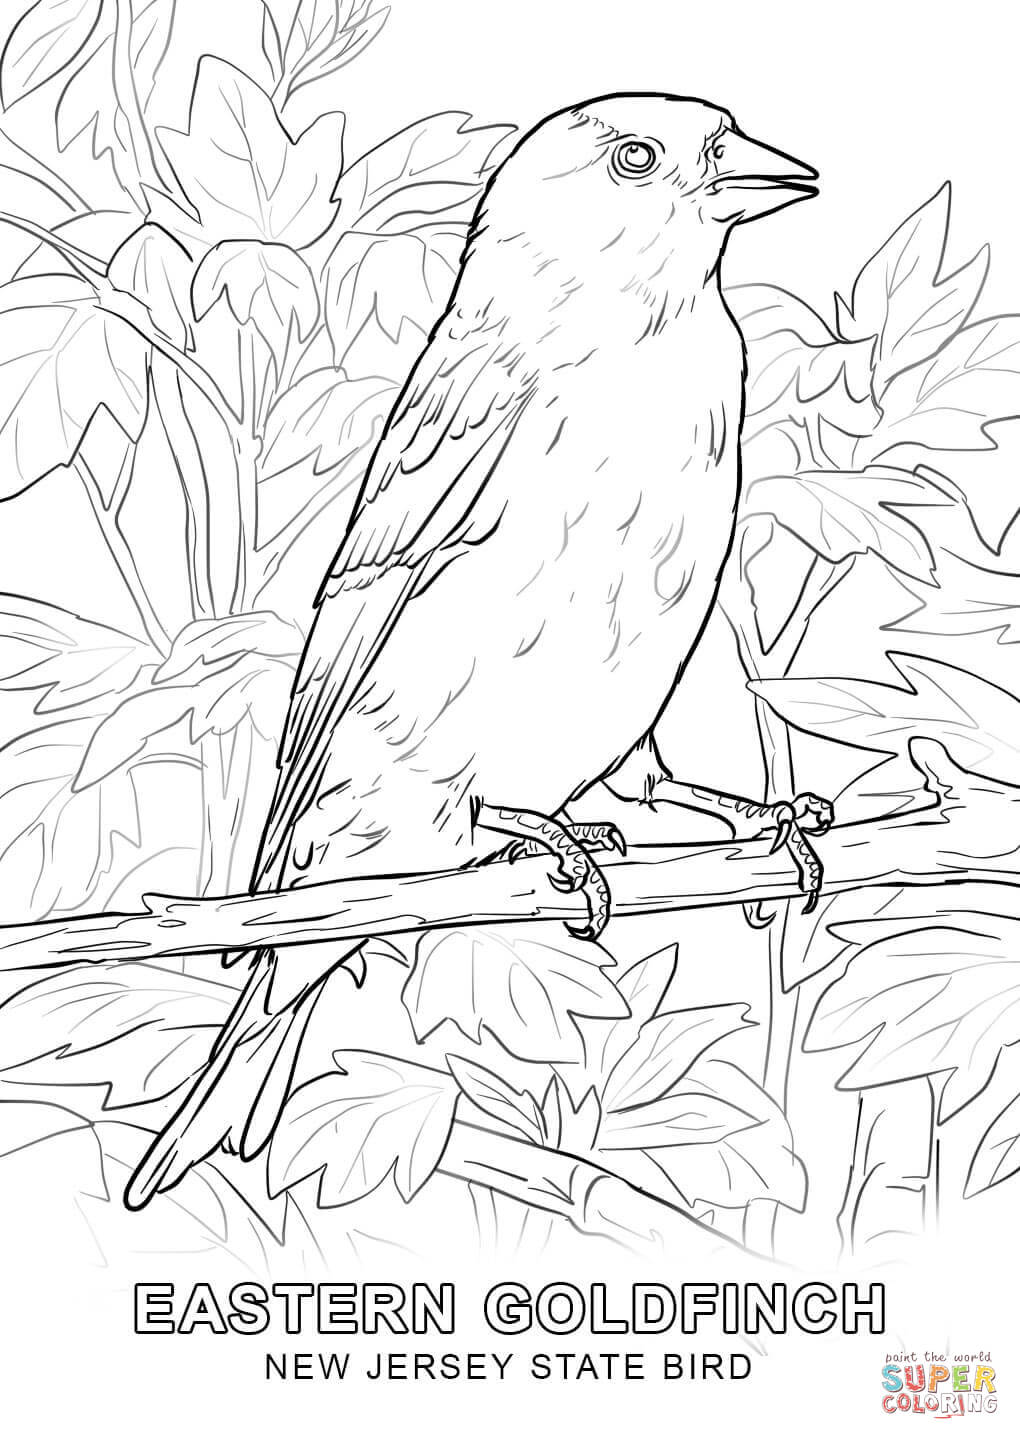 new jersey state seal coloring page new jersey state bird coloring page free printable seal coloring jersey new page state